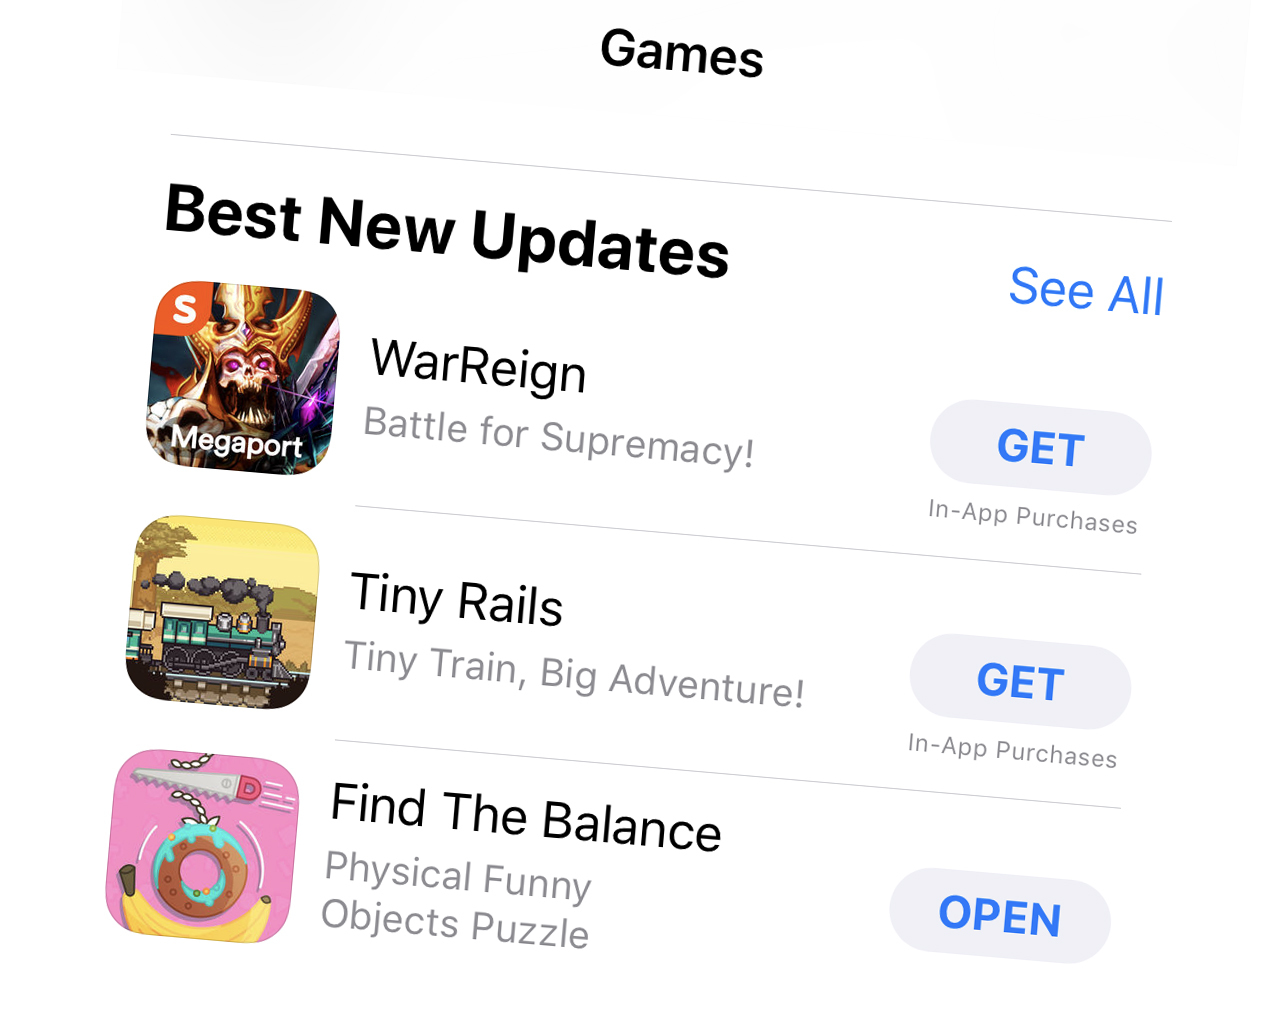 Find The Balance has been featured on the App Store in Best New Updates category!